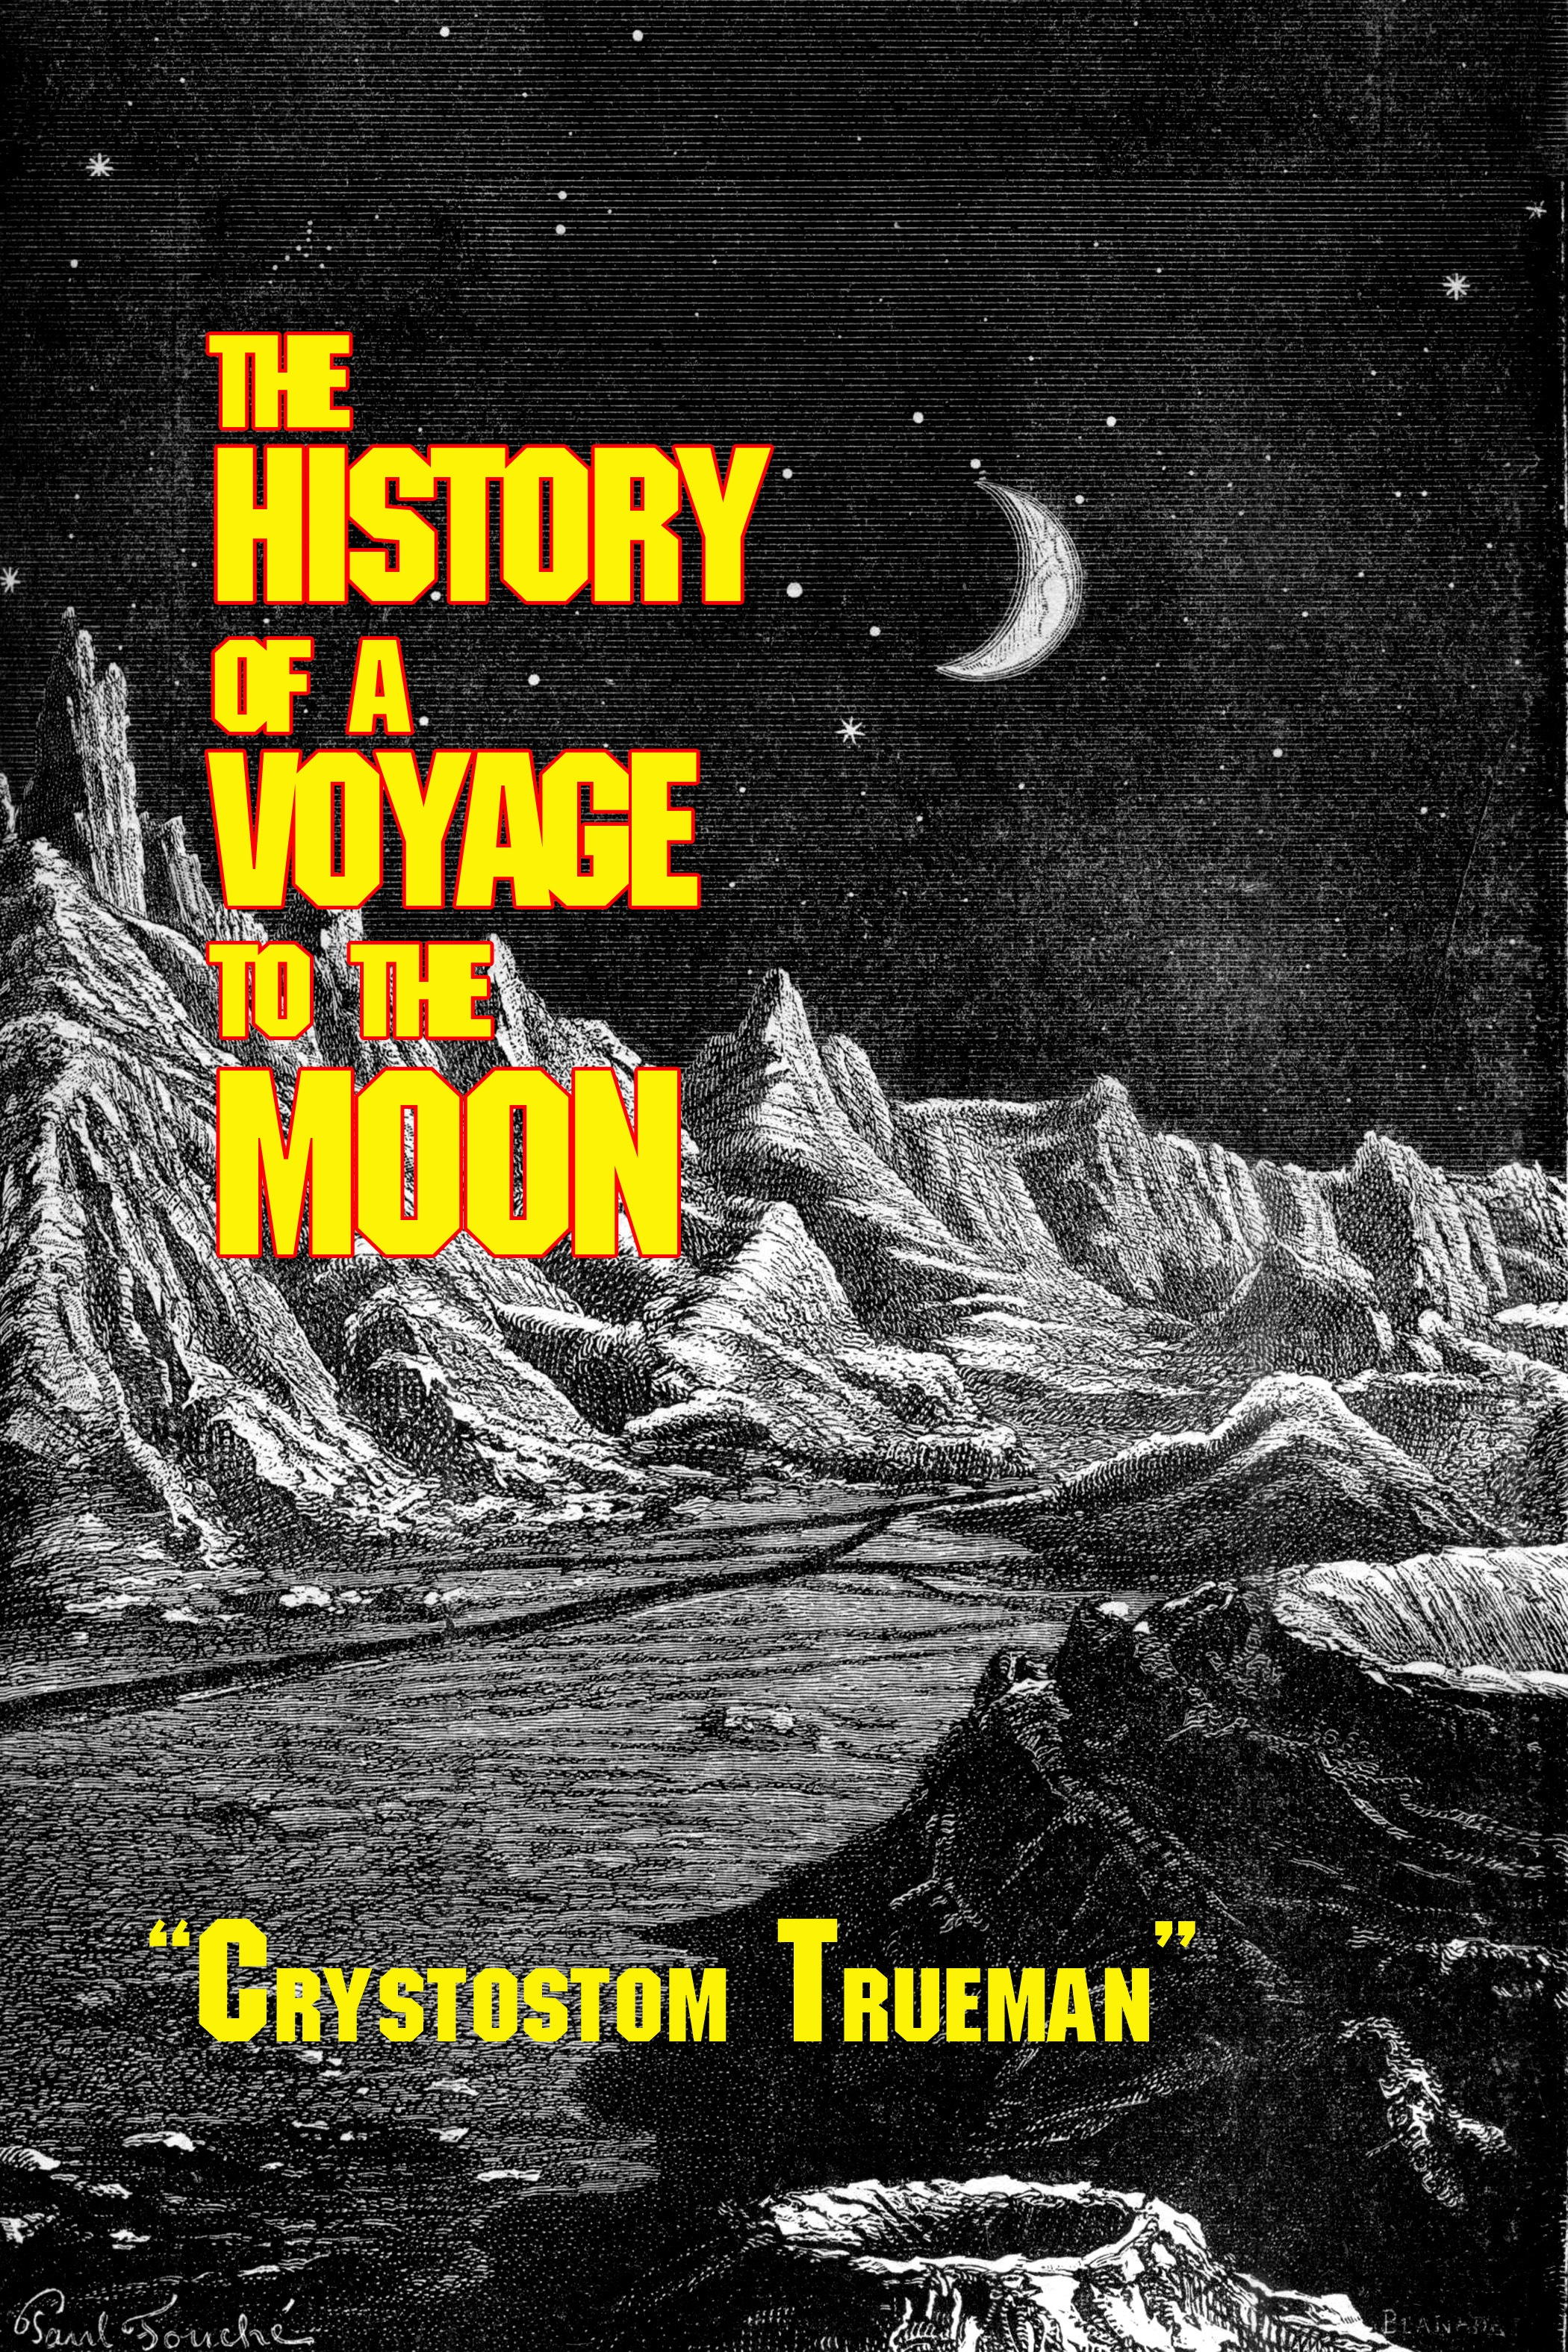 Ron Miller - The History of a Voyage to the Moon